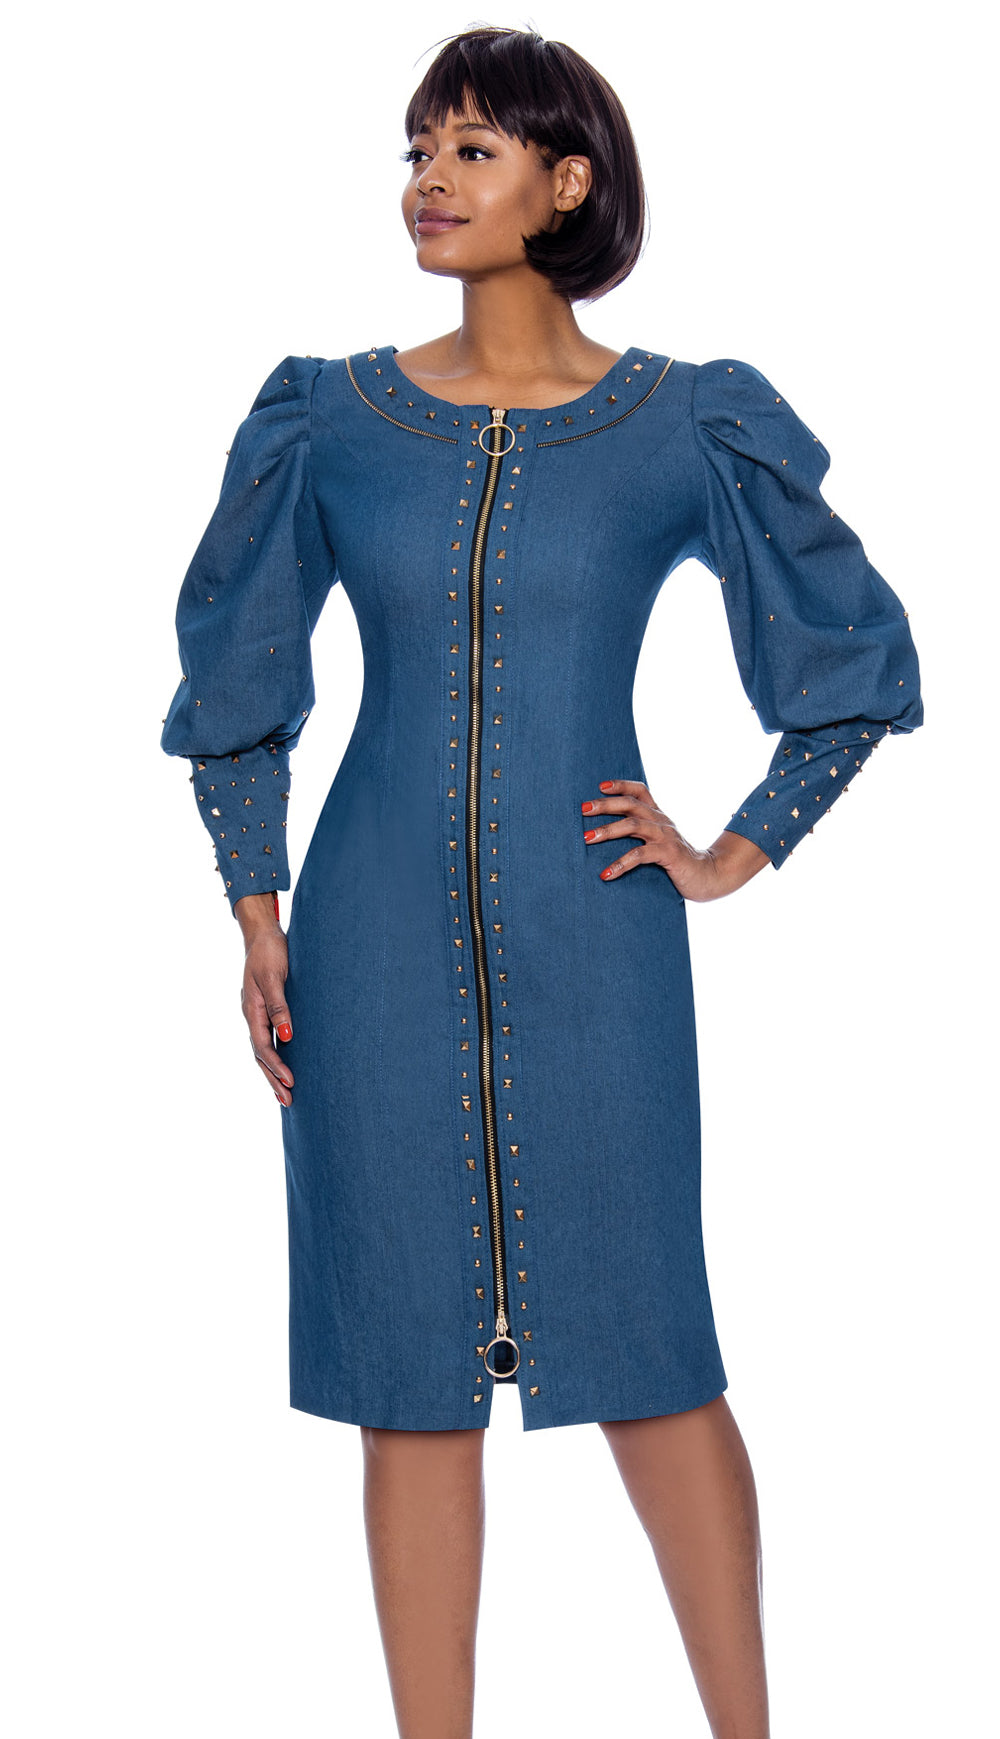 Terramina Denim Dress 7897 - Church Suits For Less